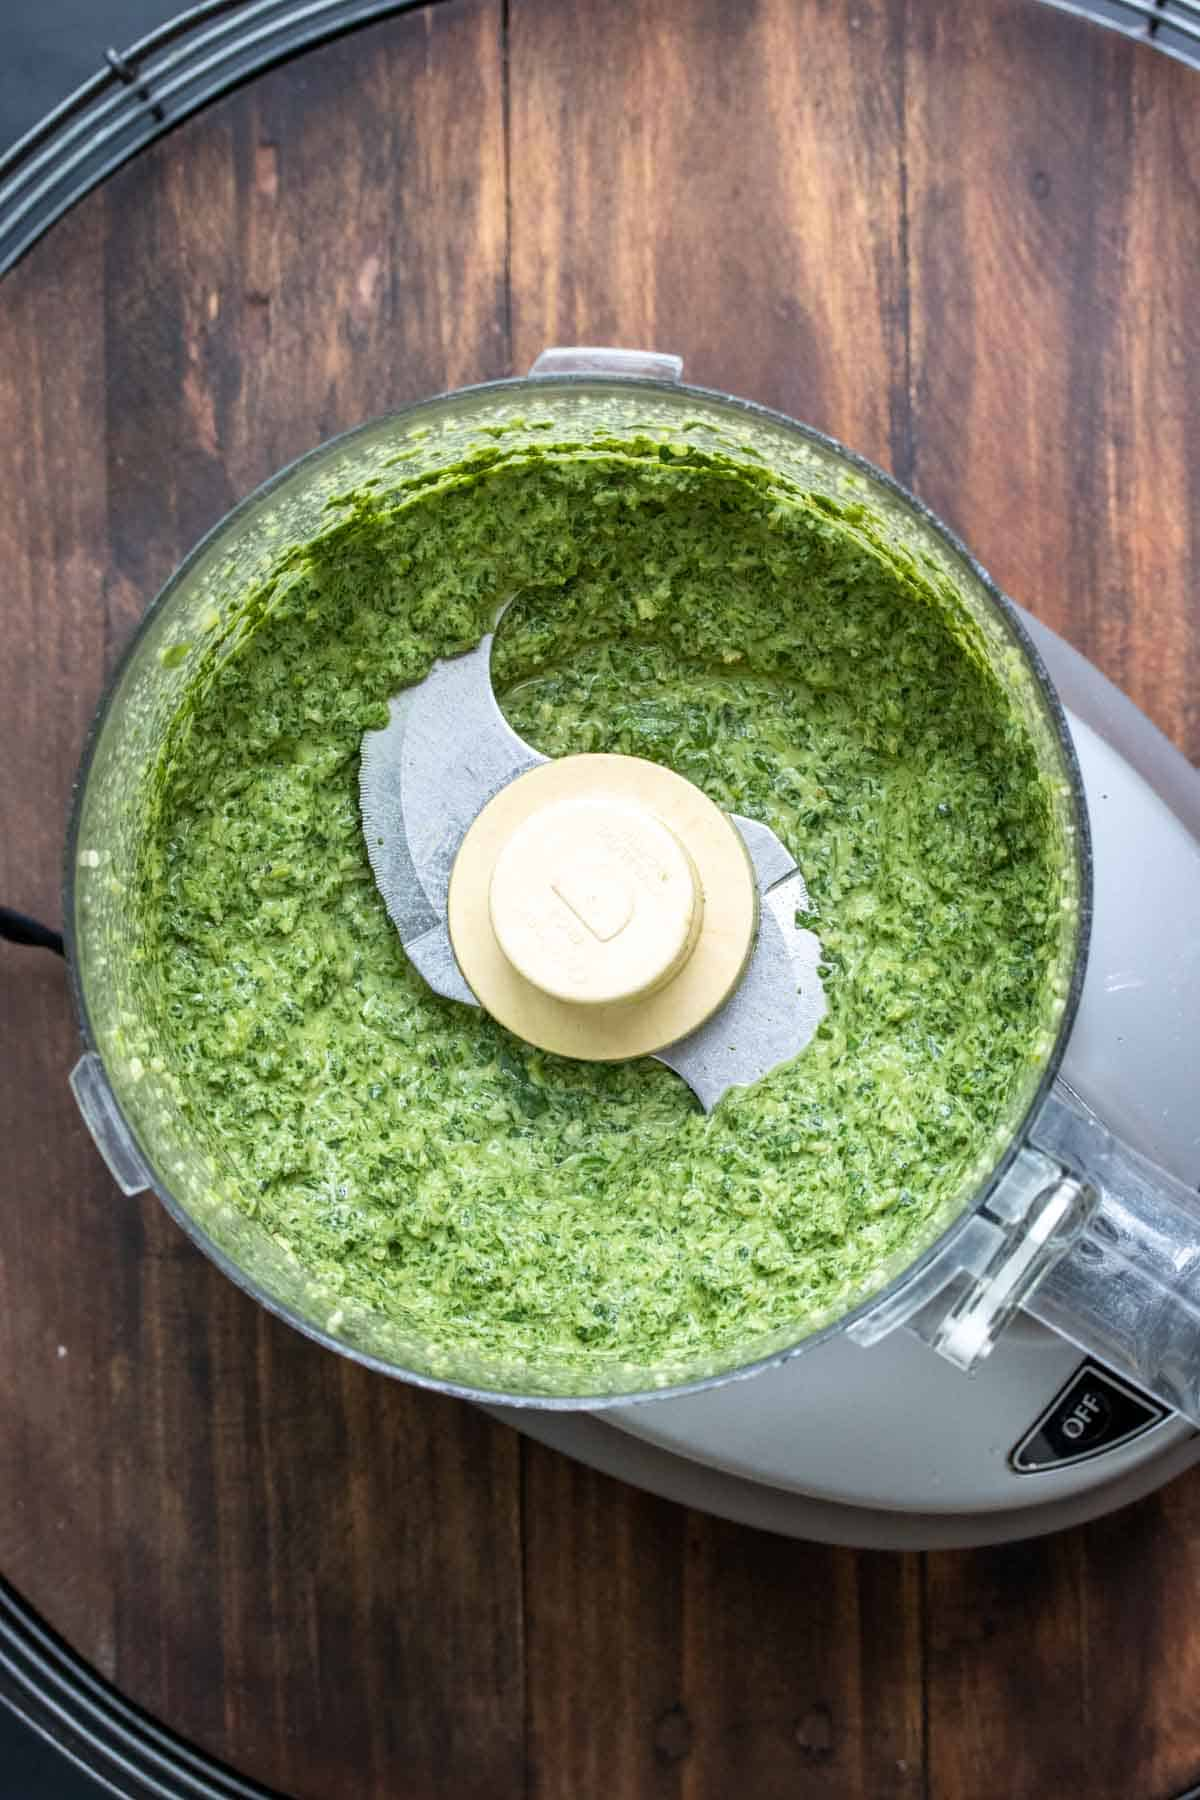 Top view of a food processor with blended pesto inside sitting on a wooden surface